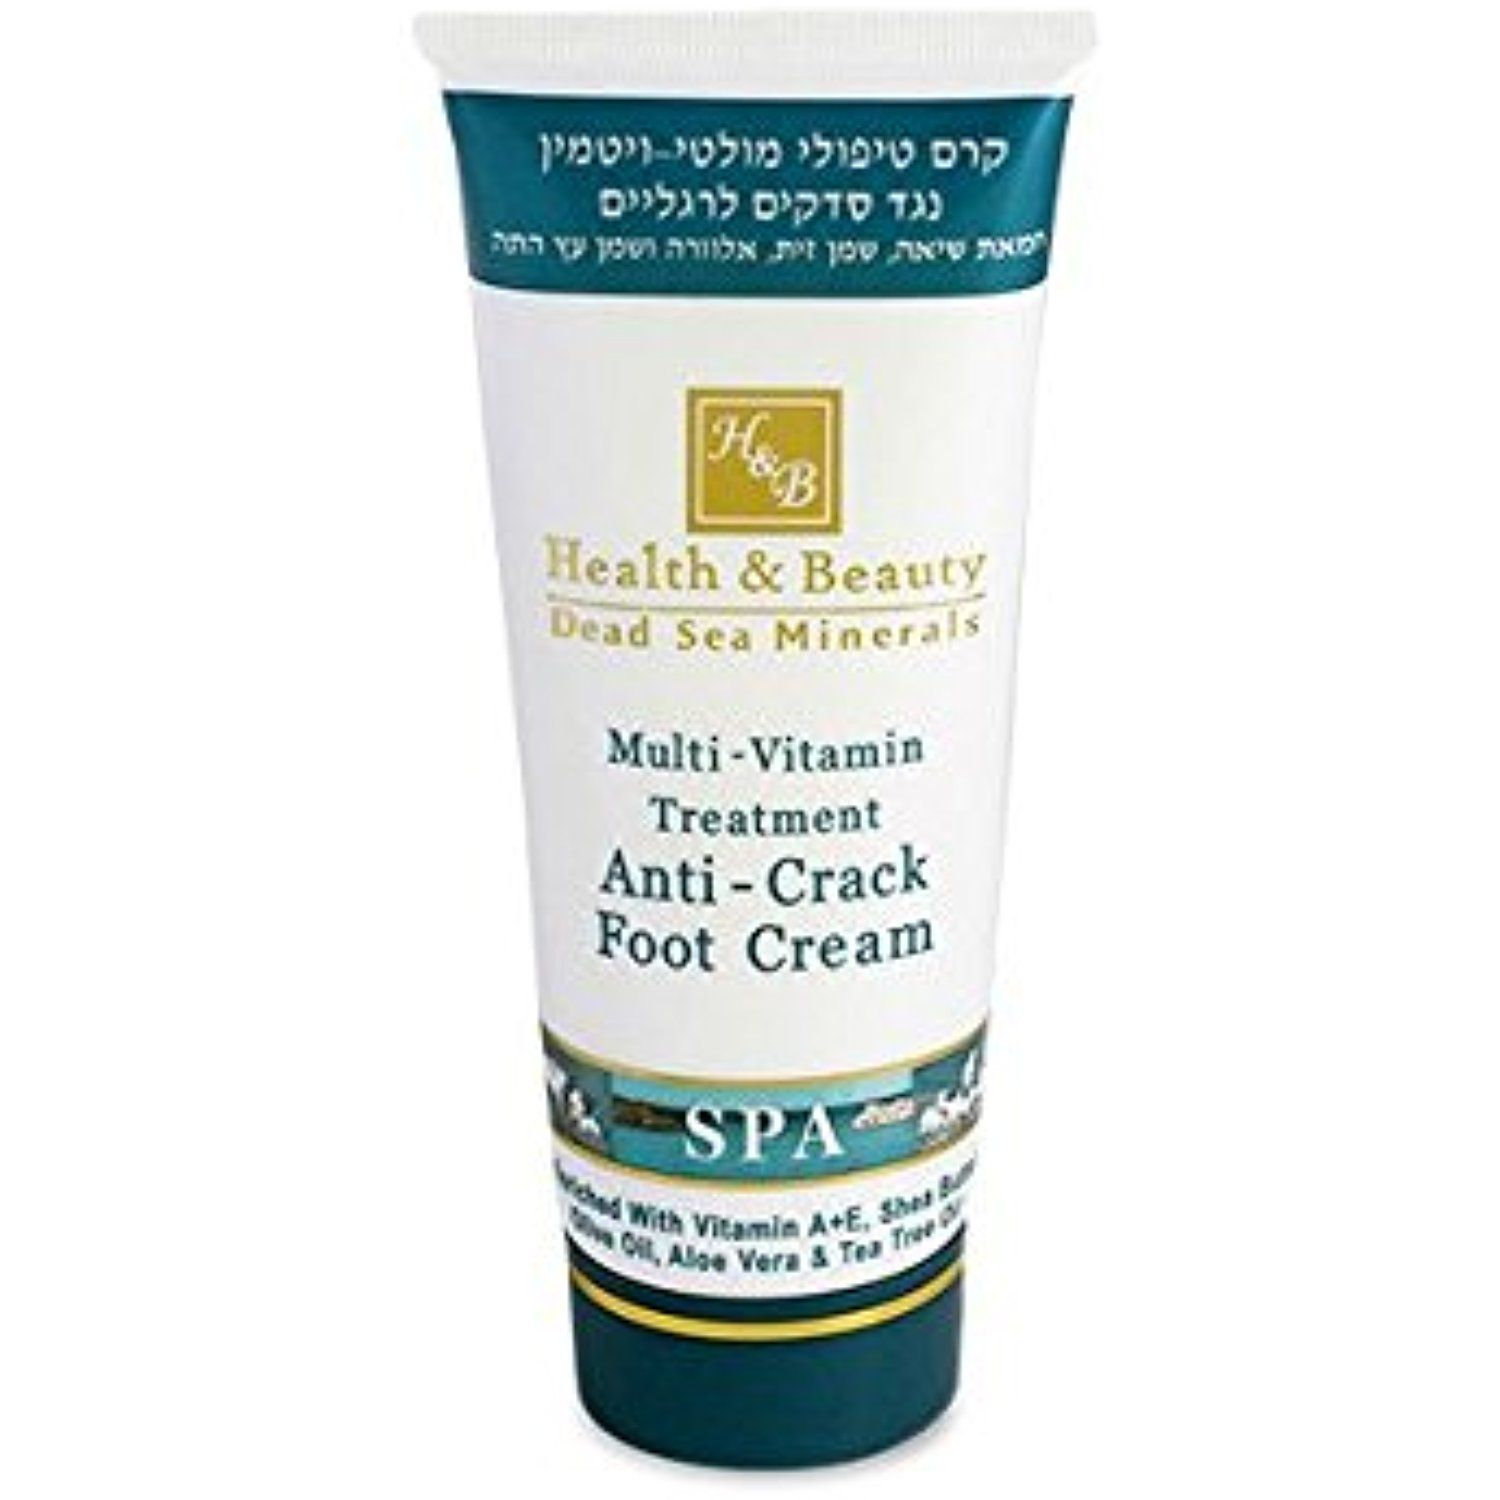 Health And Beauty Dead Sea Minerals Products Reviews